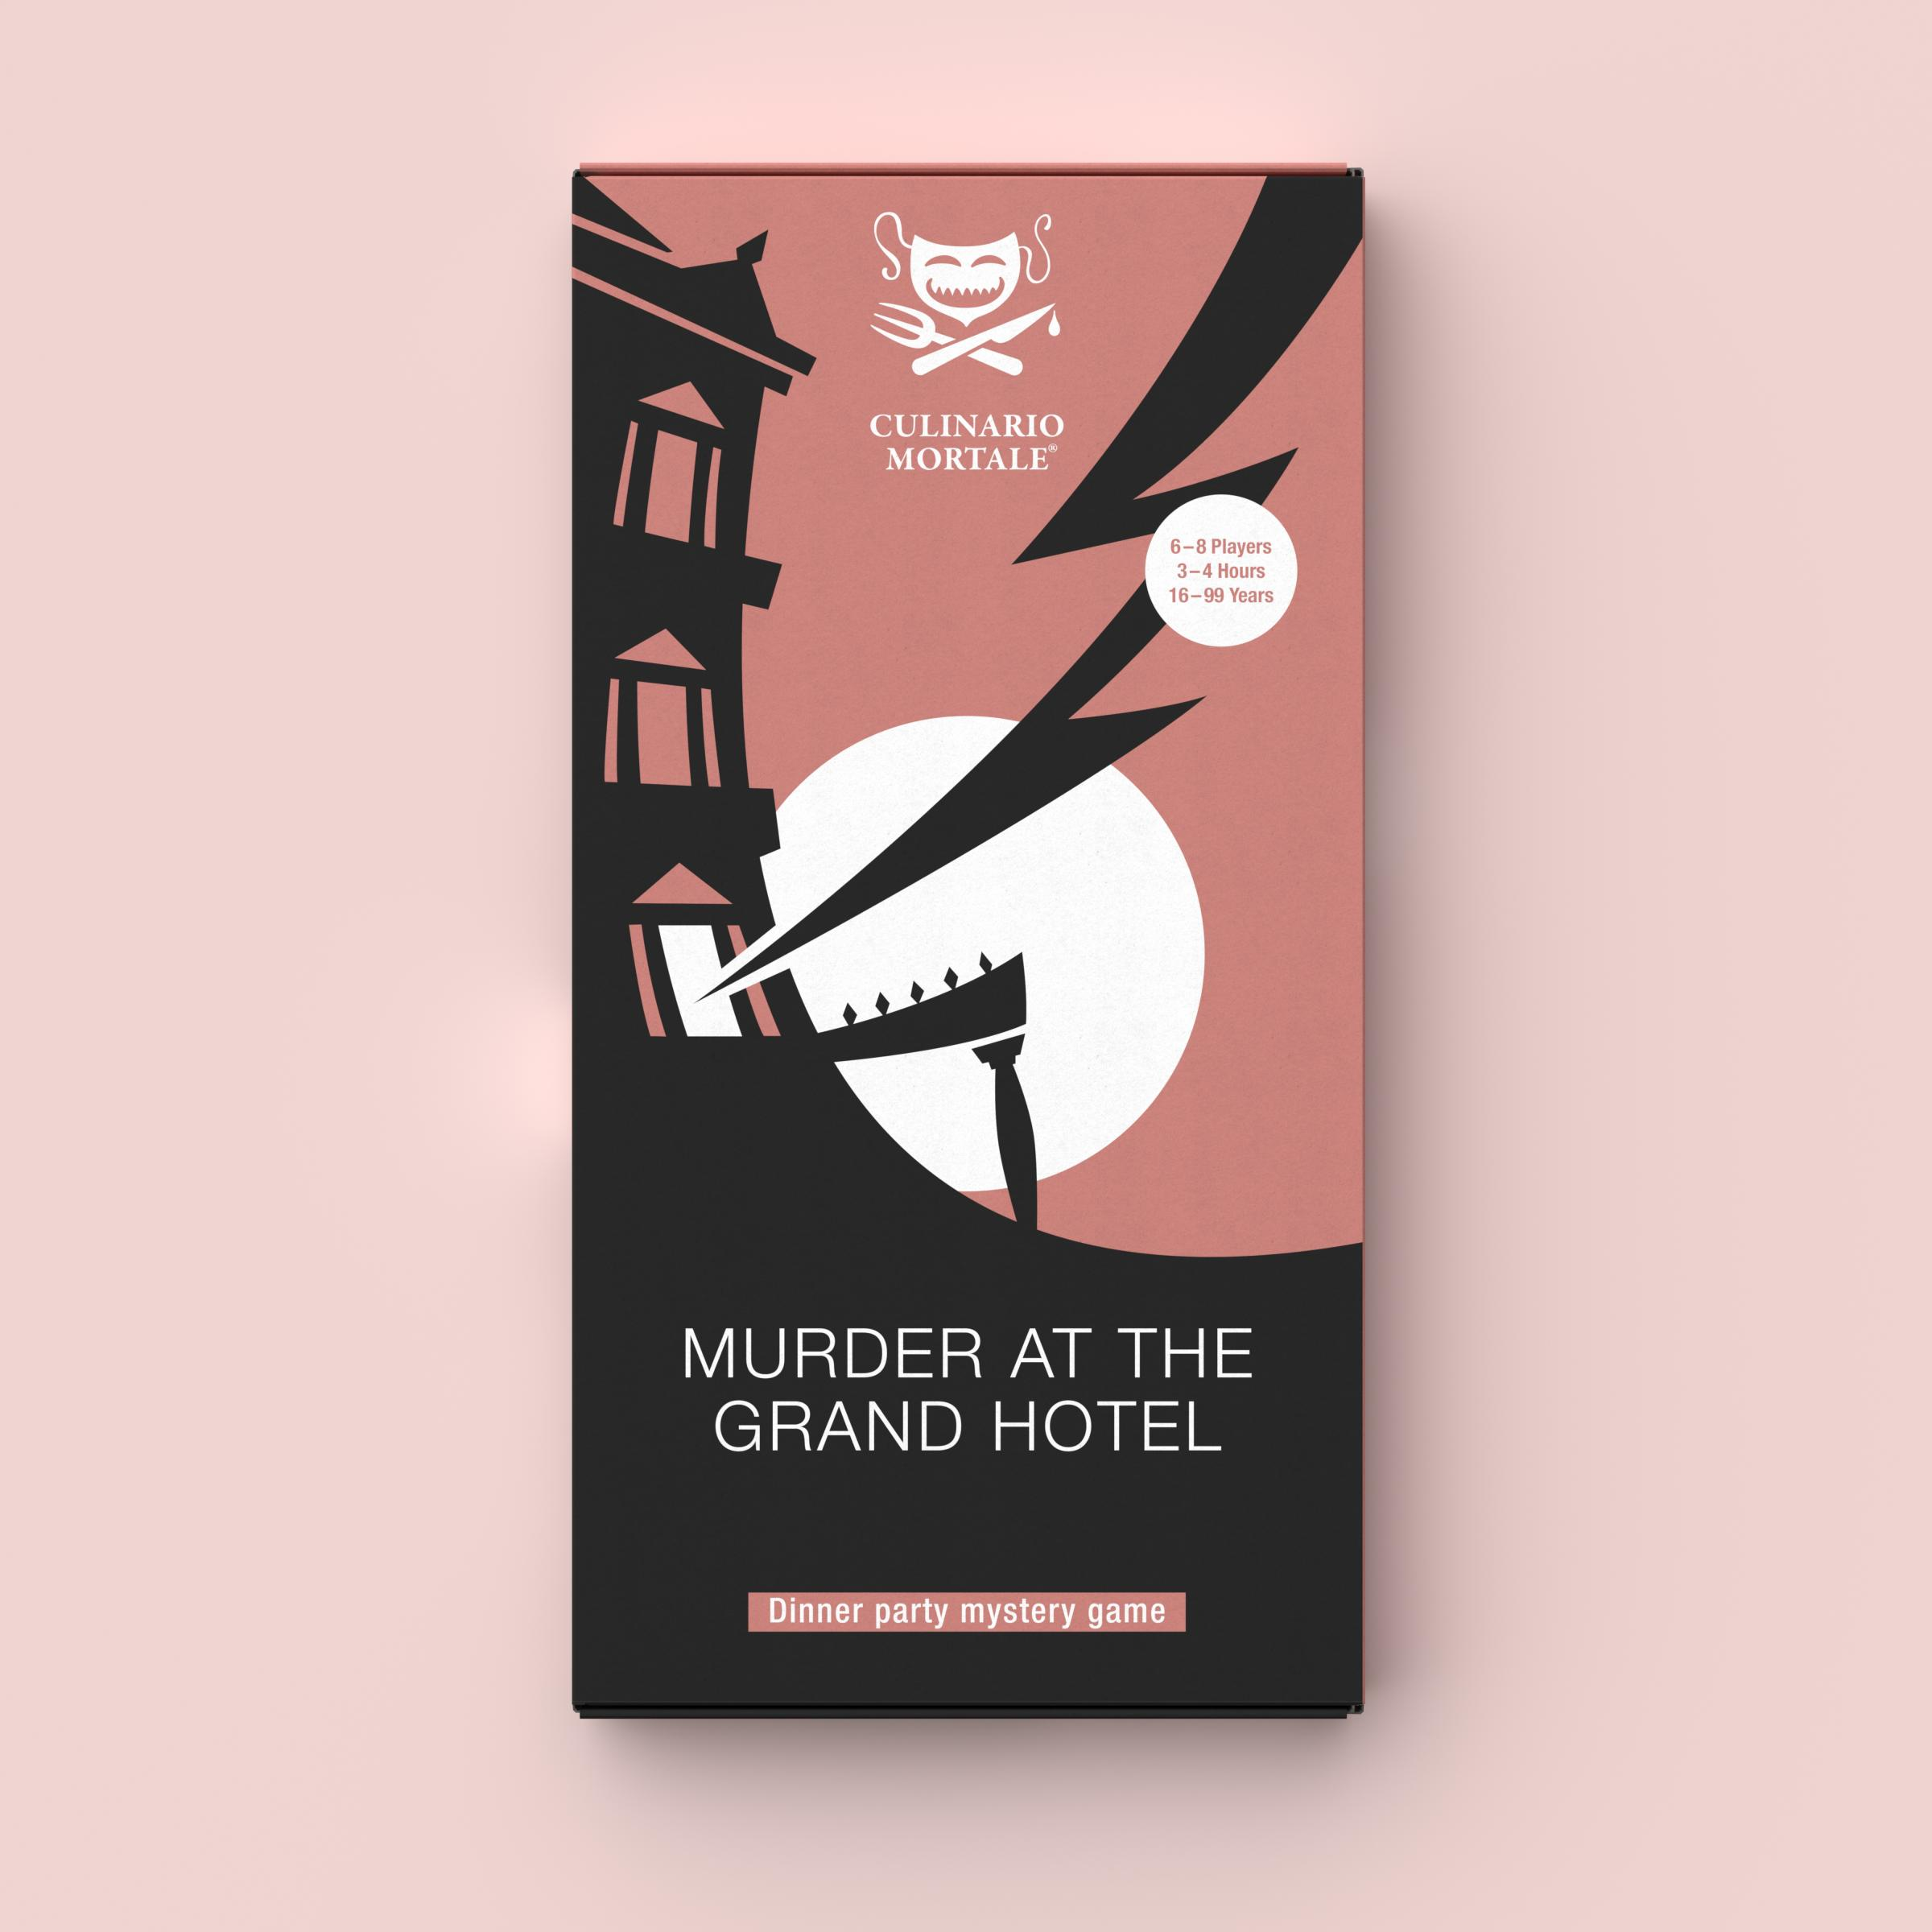 Murder at the Grand Hotel